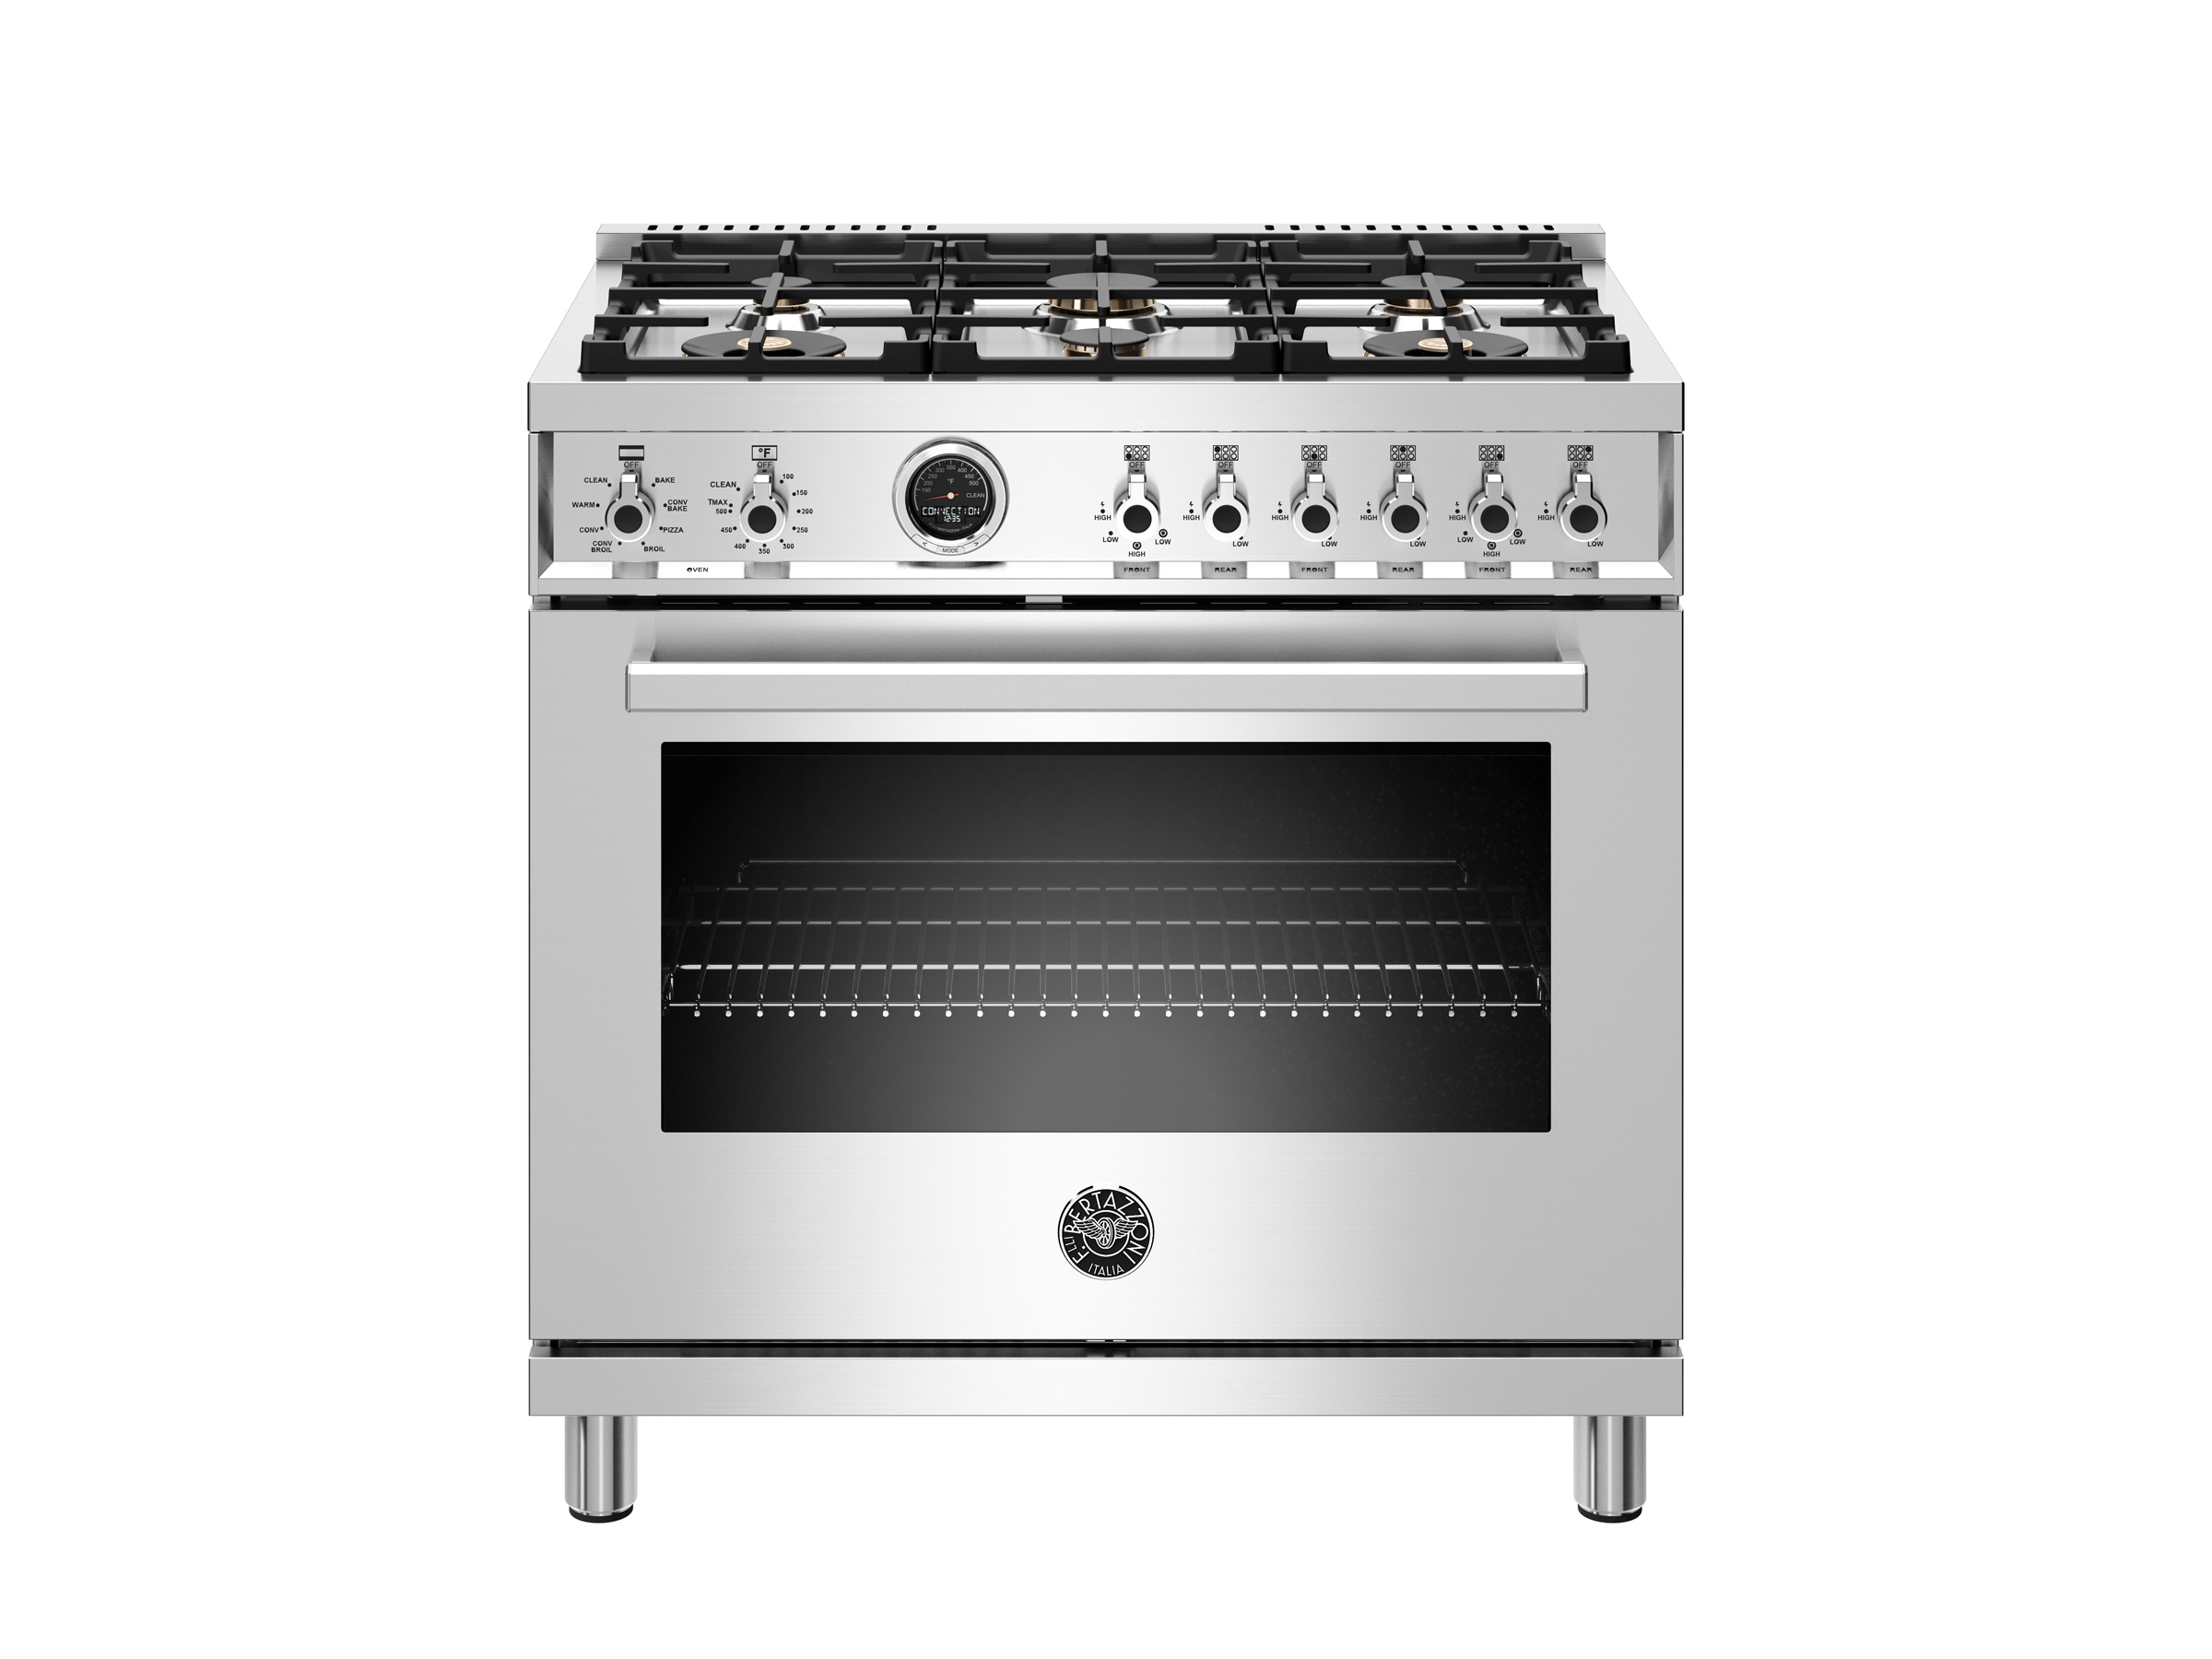 36 inch 6-Burner, Electric Self-Clean Oven | Bertazzoni - Stainless